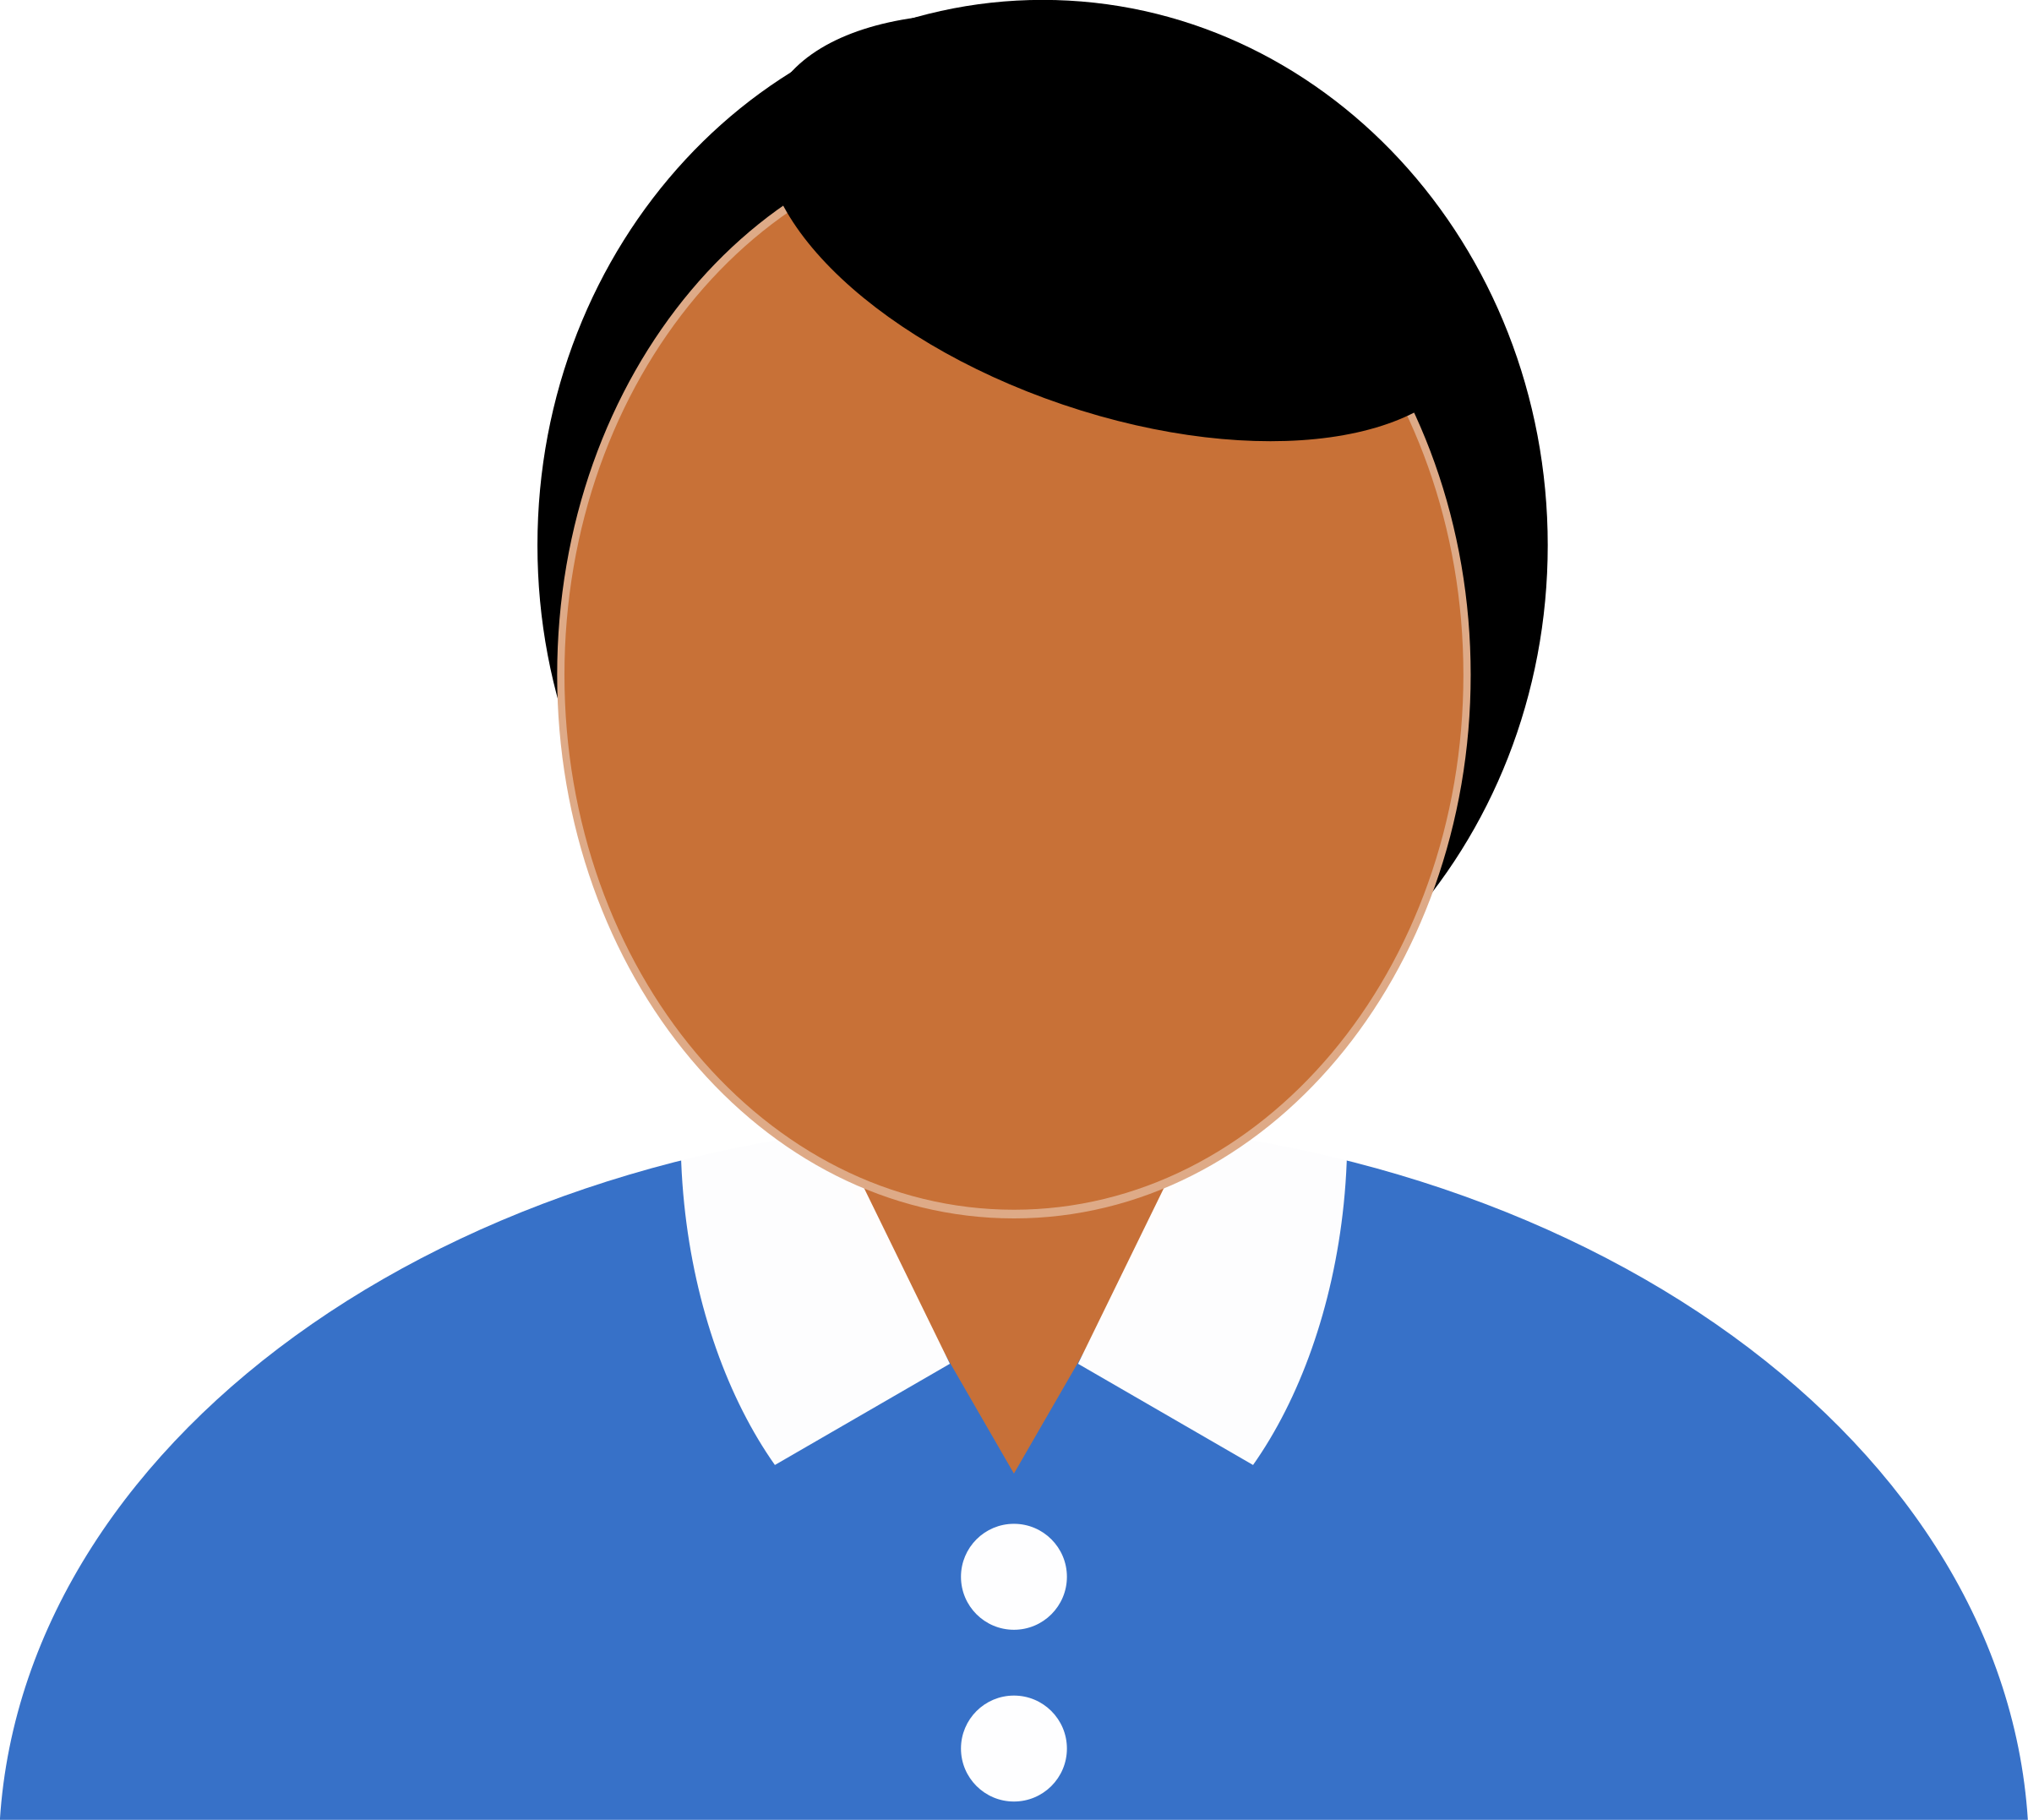 Man With Something Under Shirt Clipart.